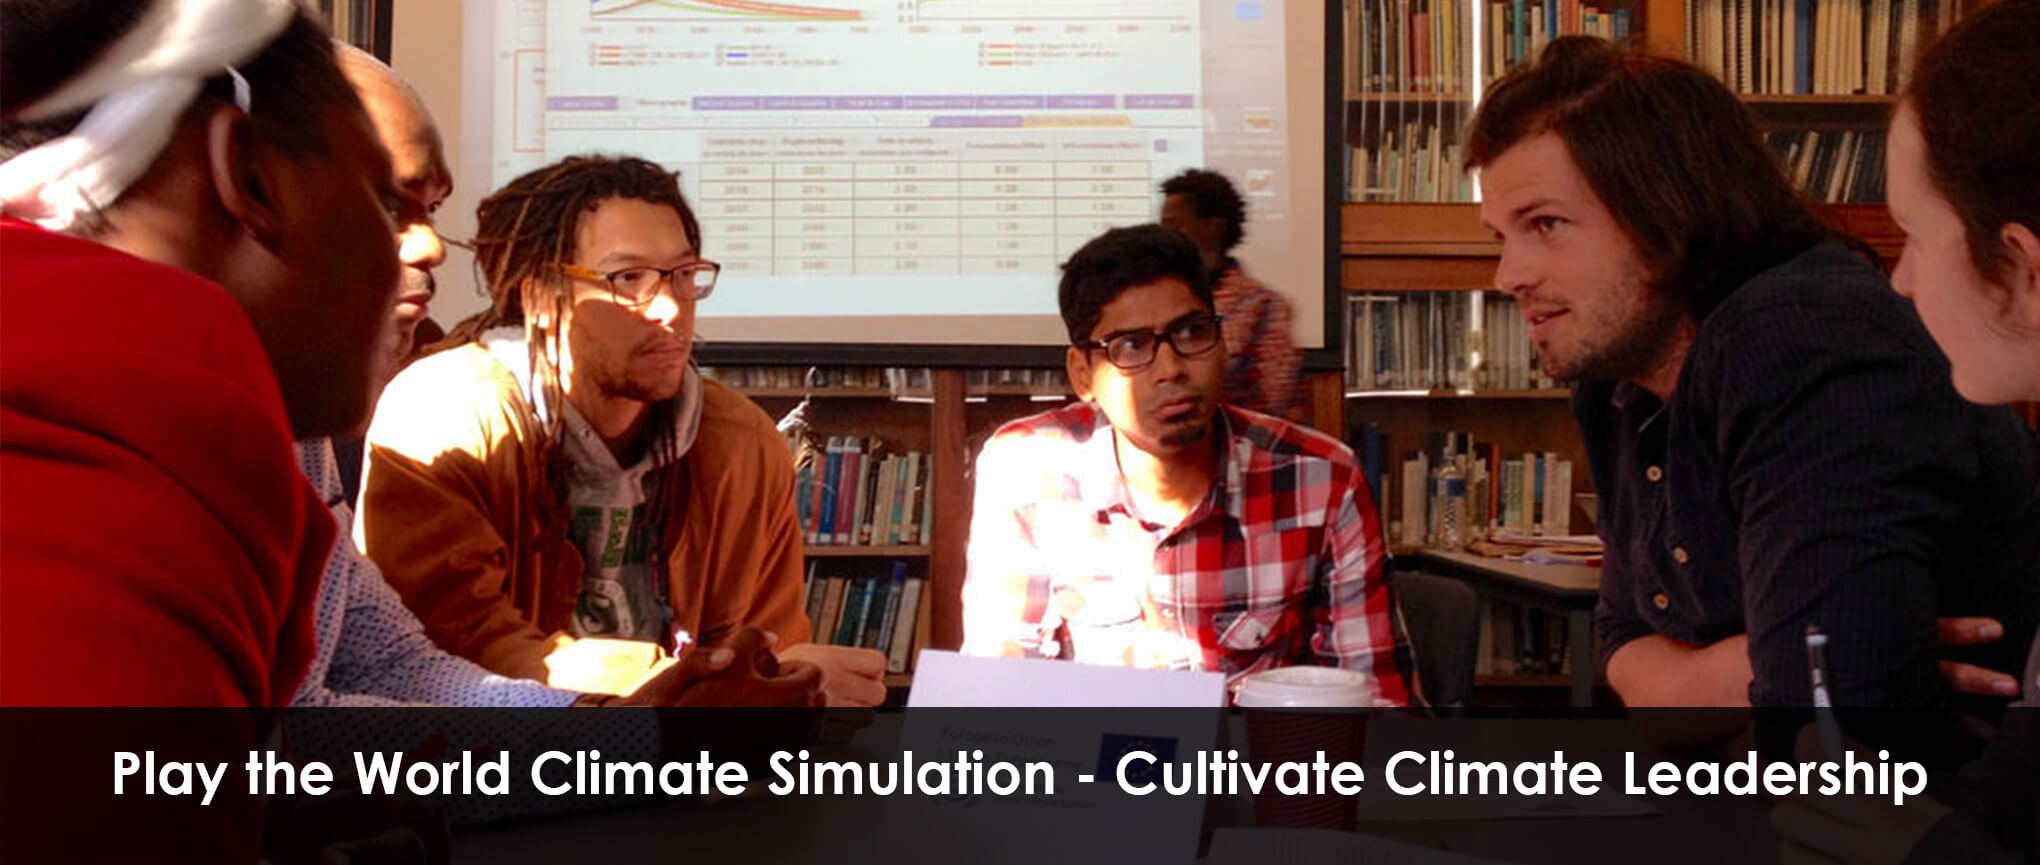 Play the World Climate Simulation - Cultivate Climate Leadership